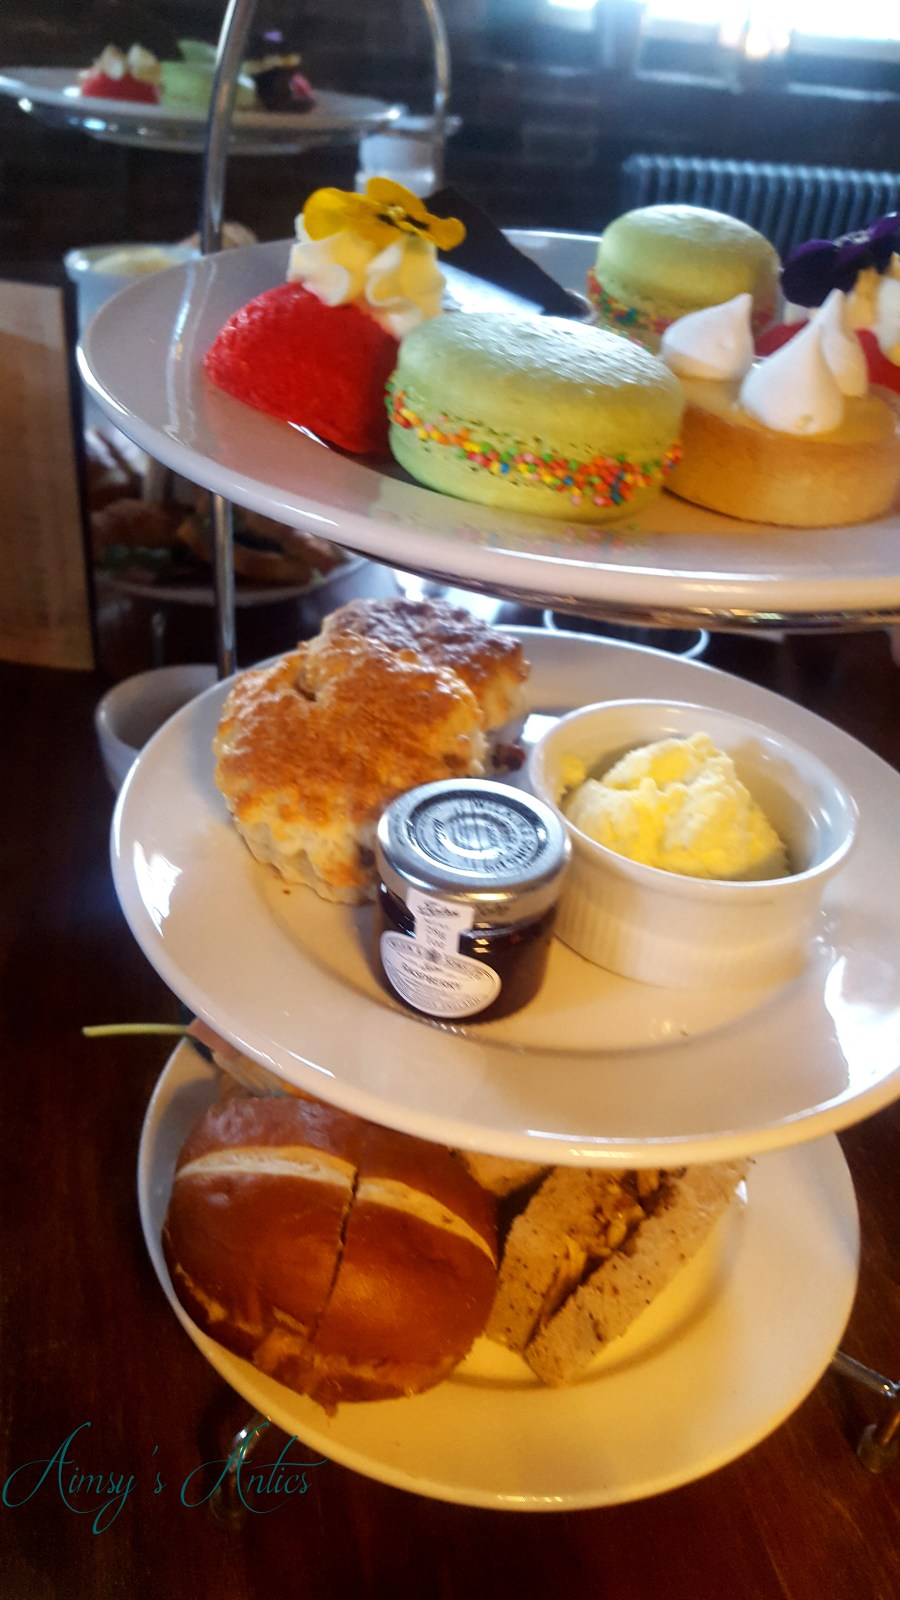 Afternoon tea cake stand with sandwiches, scones and desserts